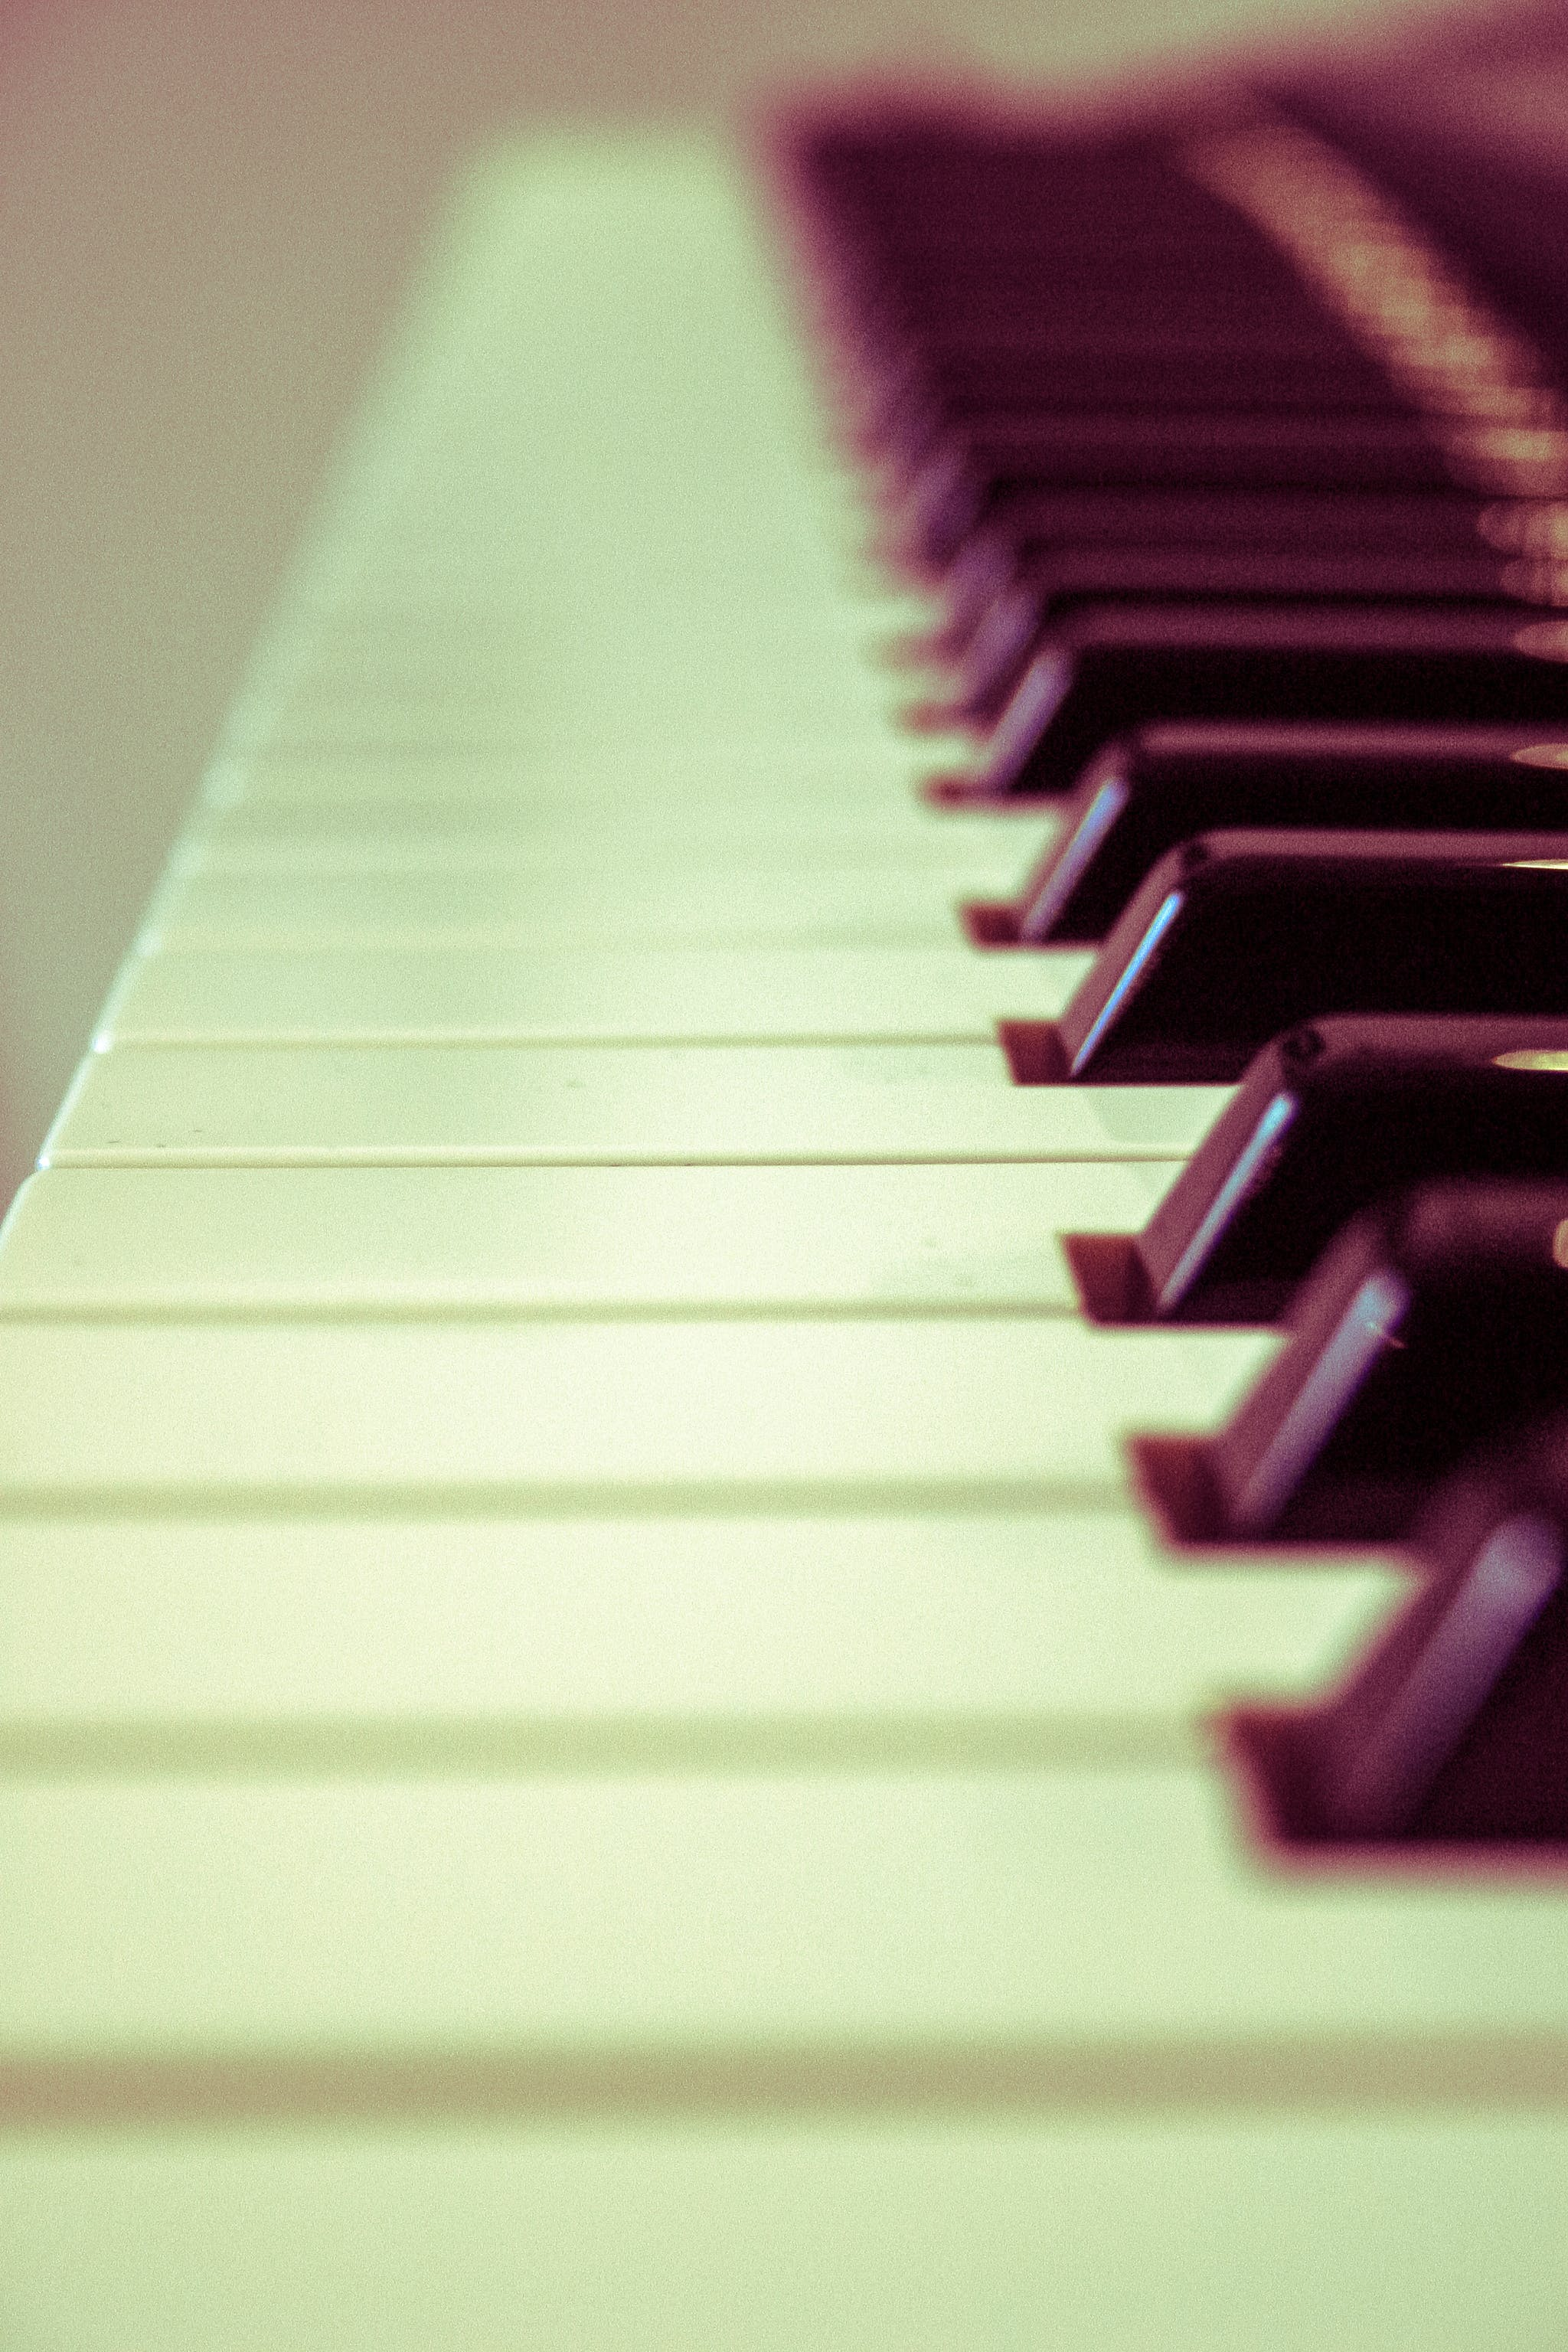 Free stock photo of music, musical instrument, piano keys